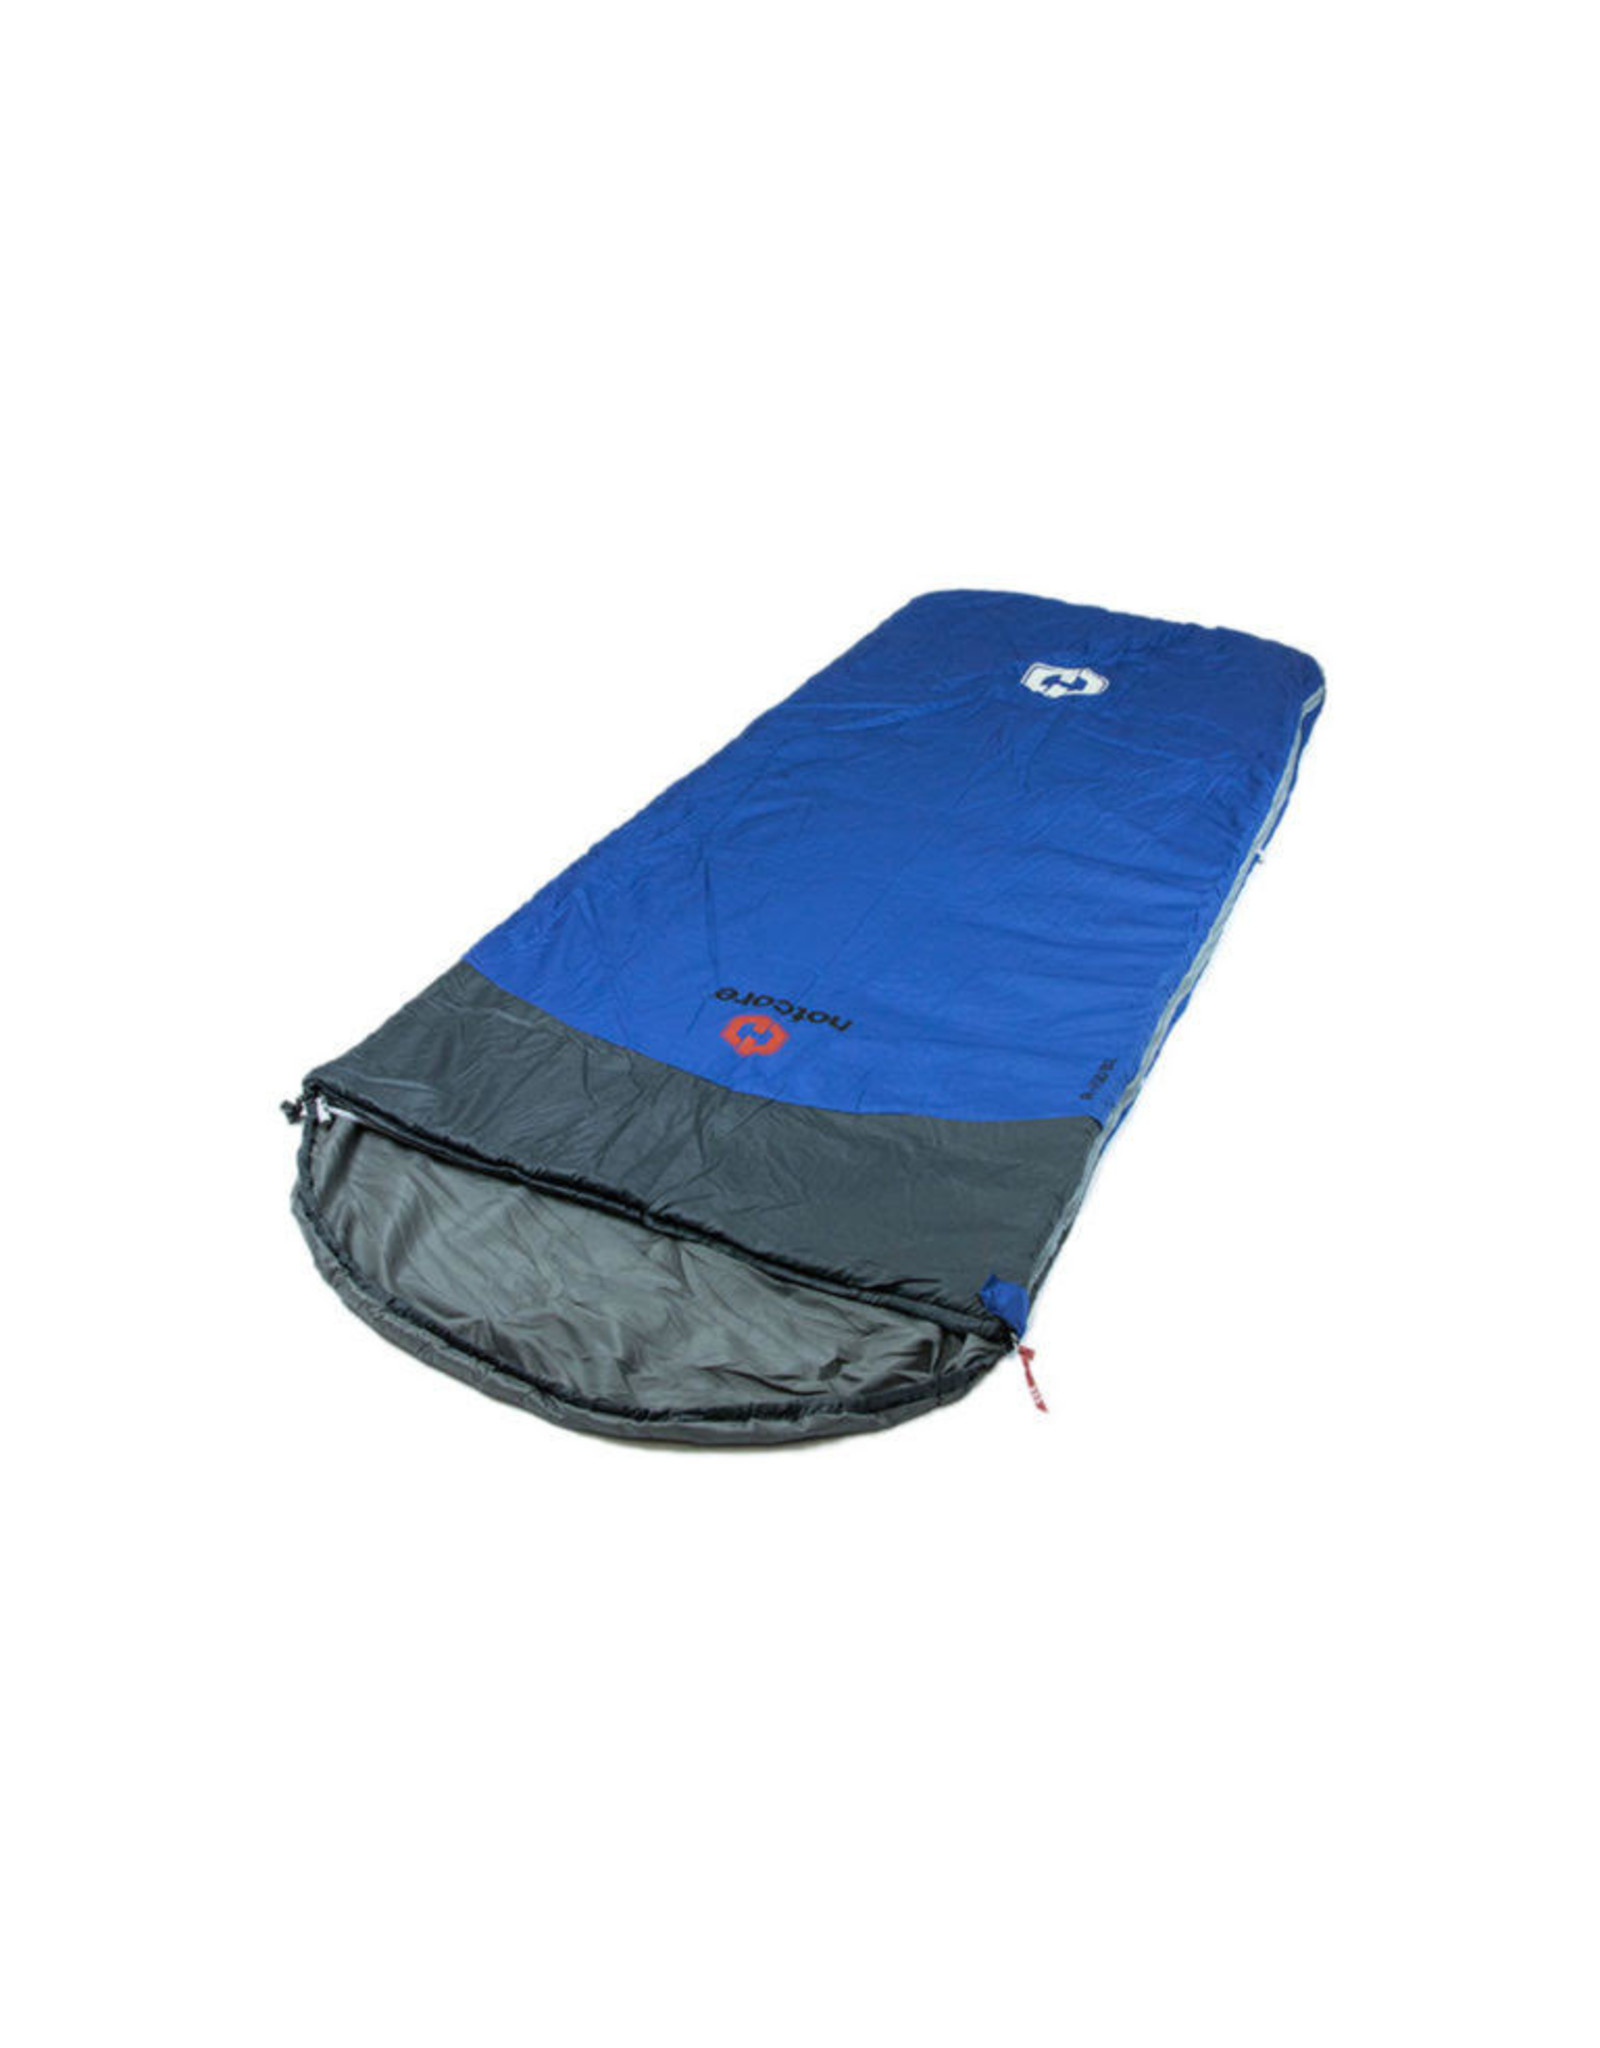 Hotcore Outdoor Products Hotcore R-200 BL Sleeping Bag Blue